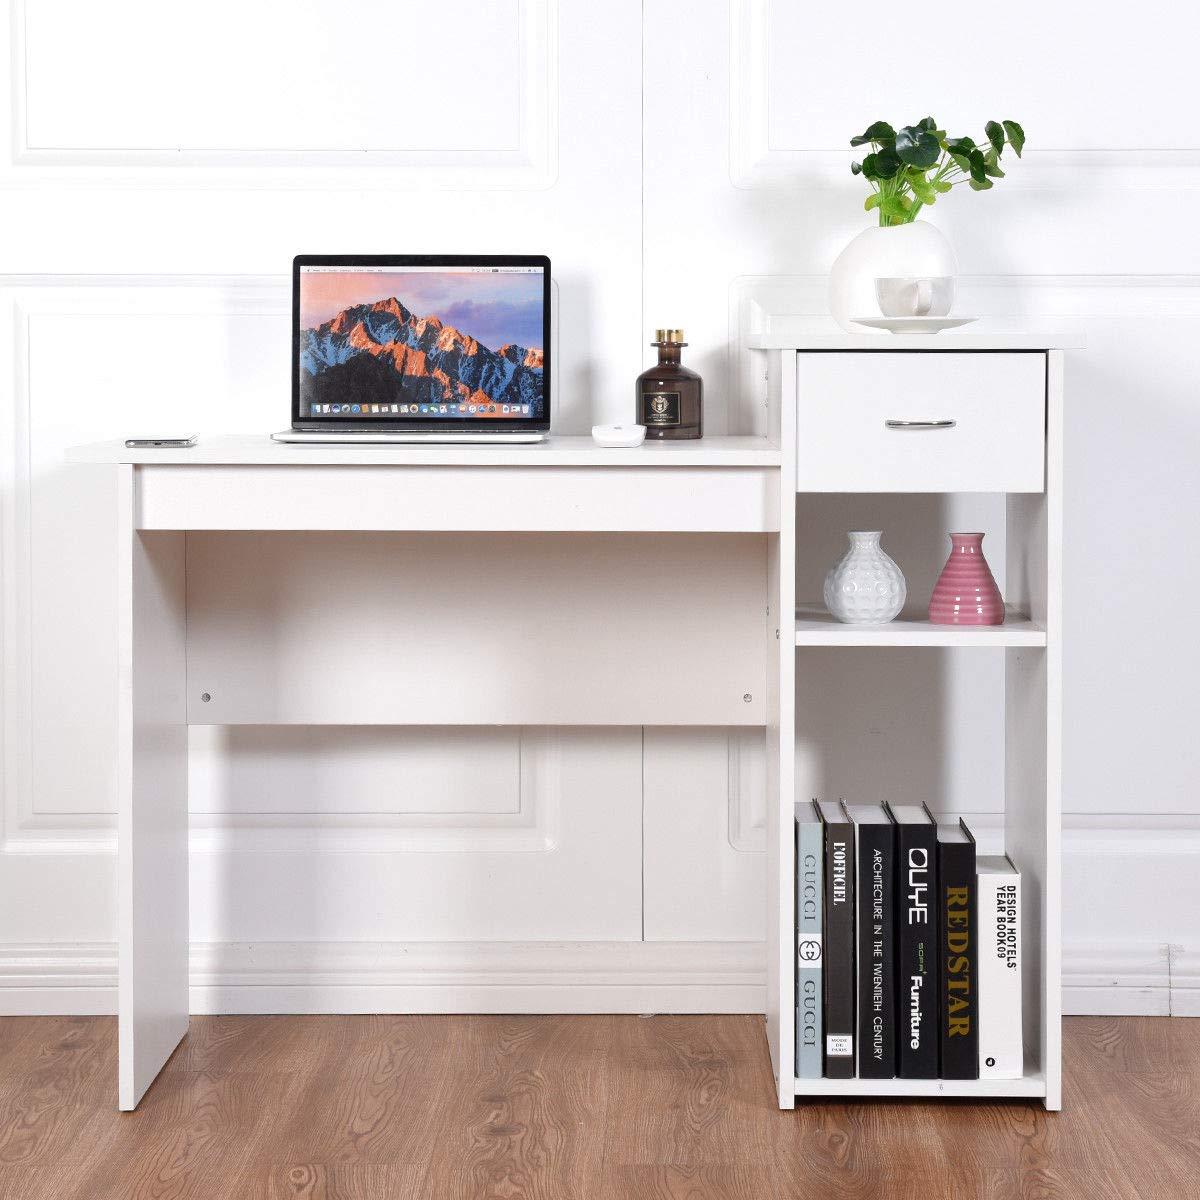 Gosaib study Desk & Workstation in White Color